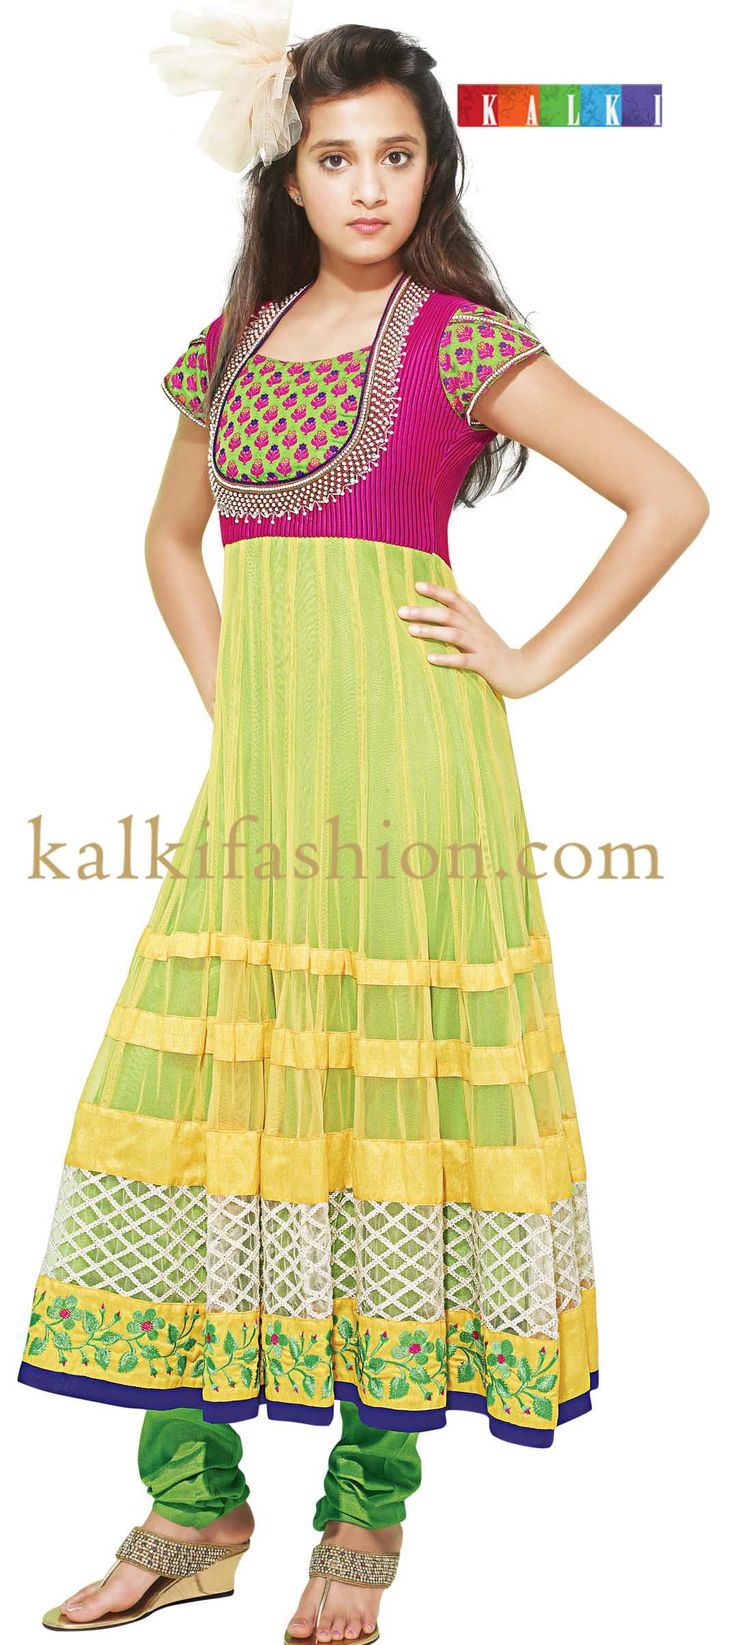 Buy it now http://www.kalkifashion.com/yellow-anarkali-dress-with-resham-embroidery.html  Yellow anarkali dress with resham embroidery